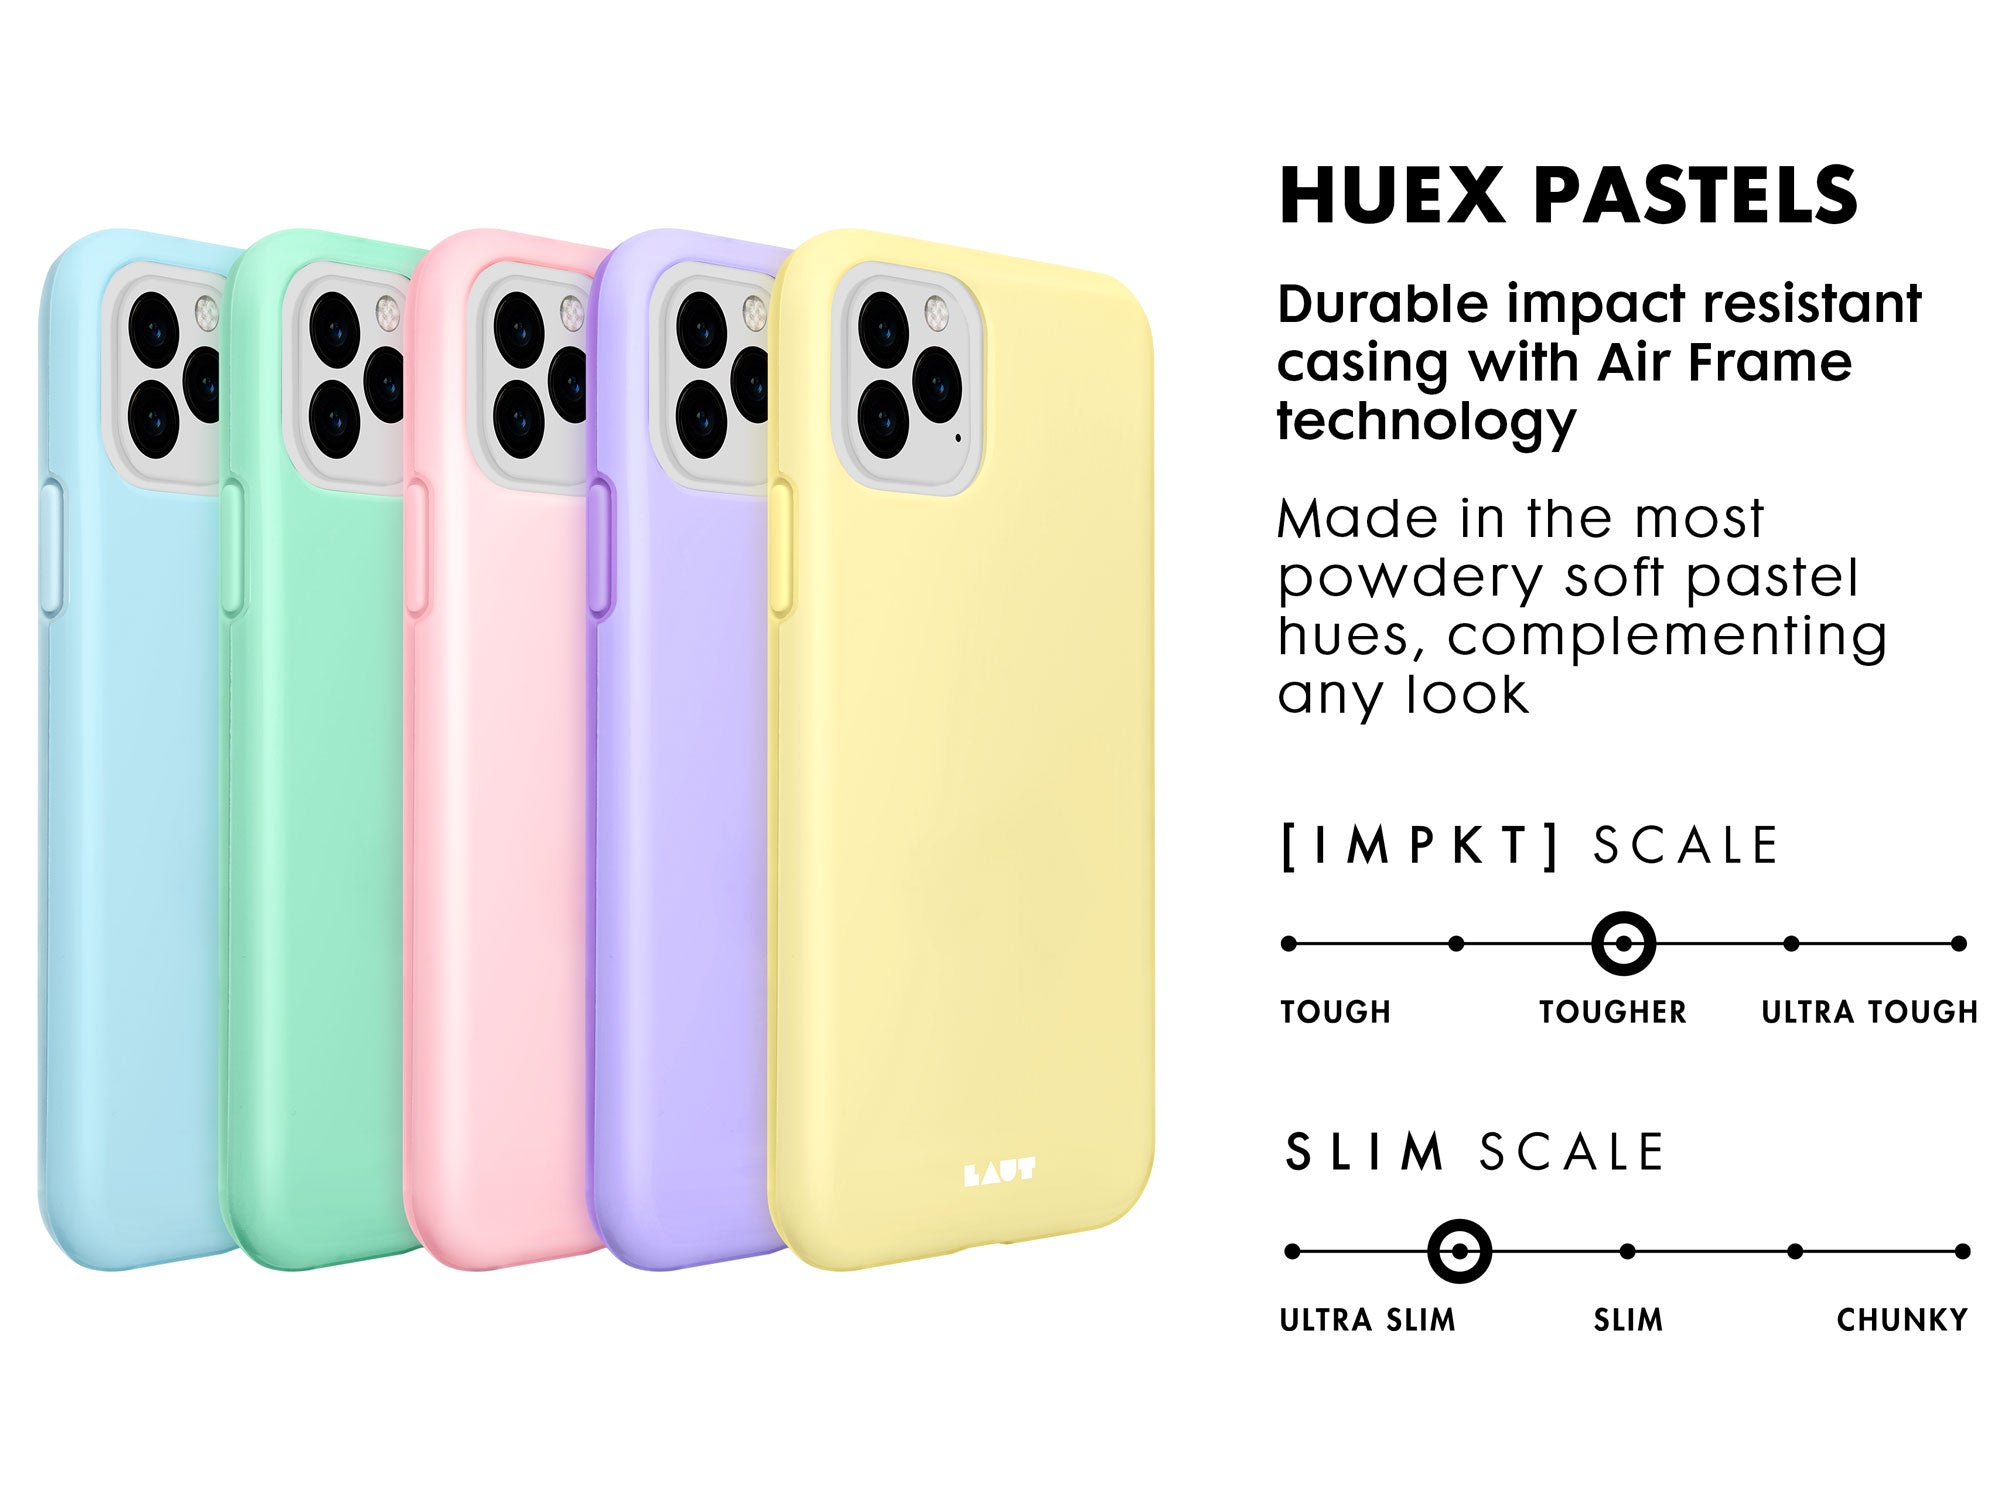 HUEX Pastels for iPhone 11 series